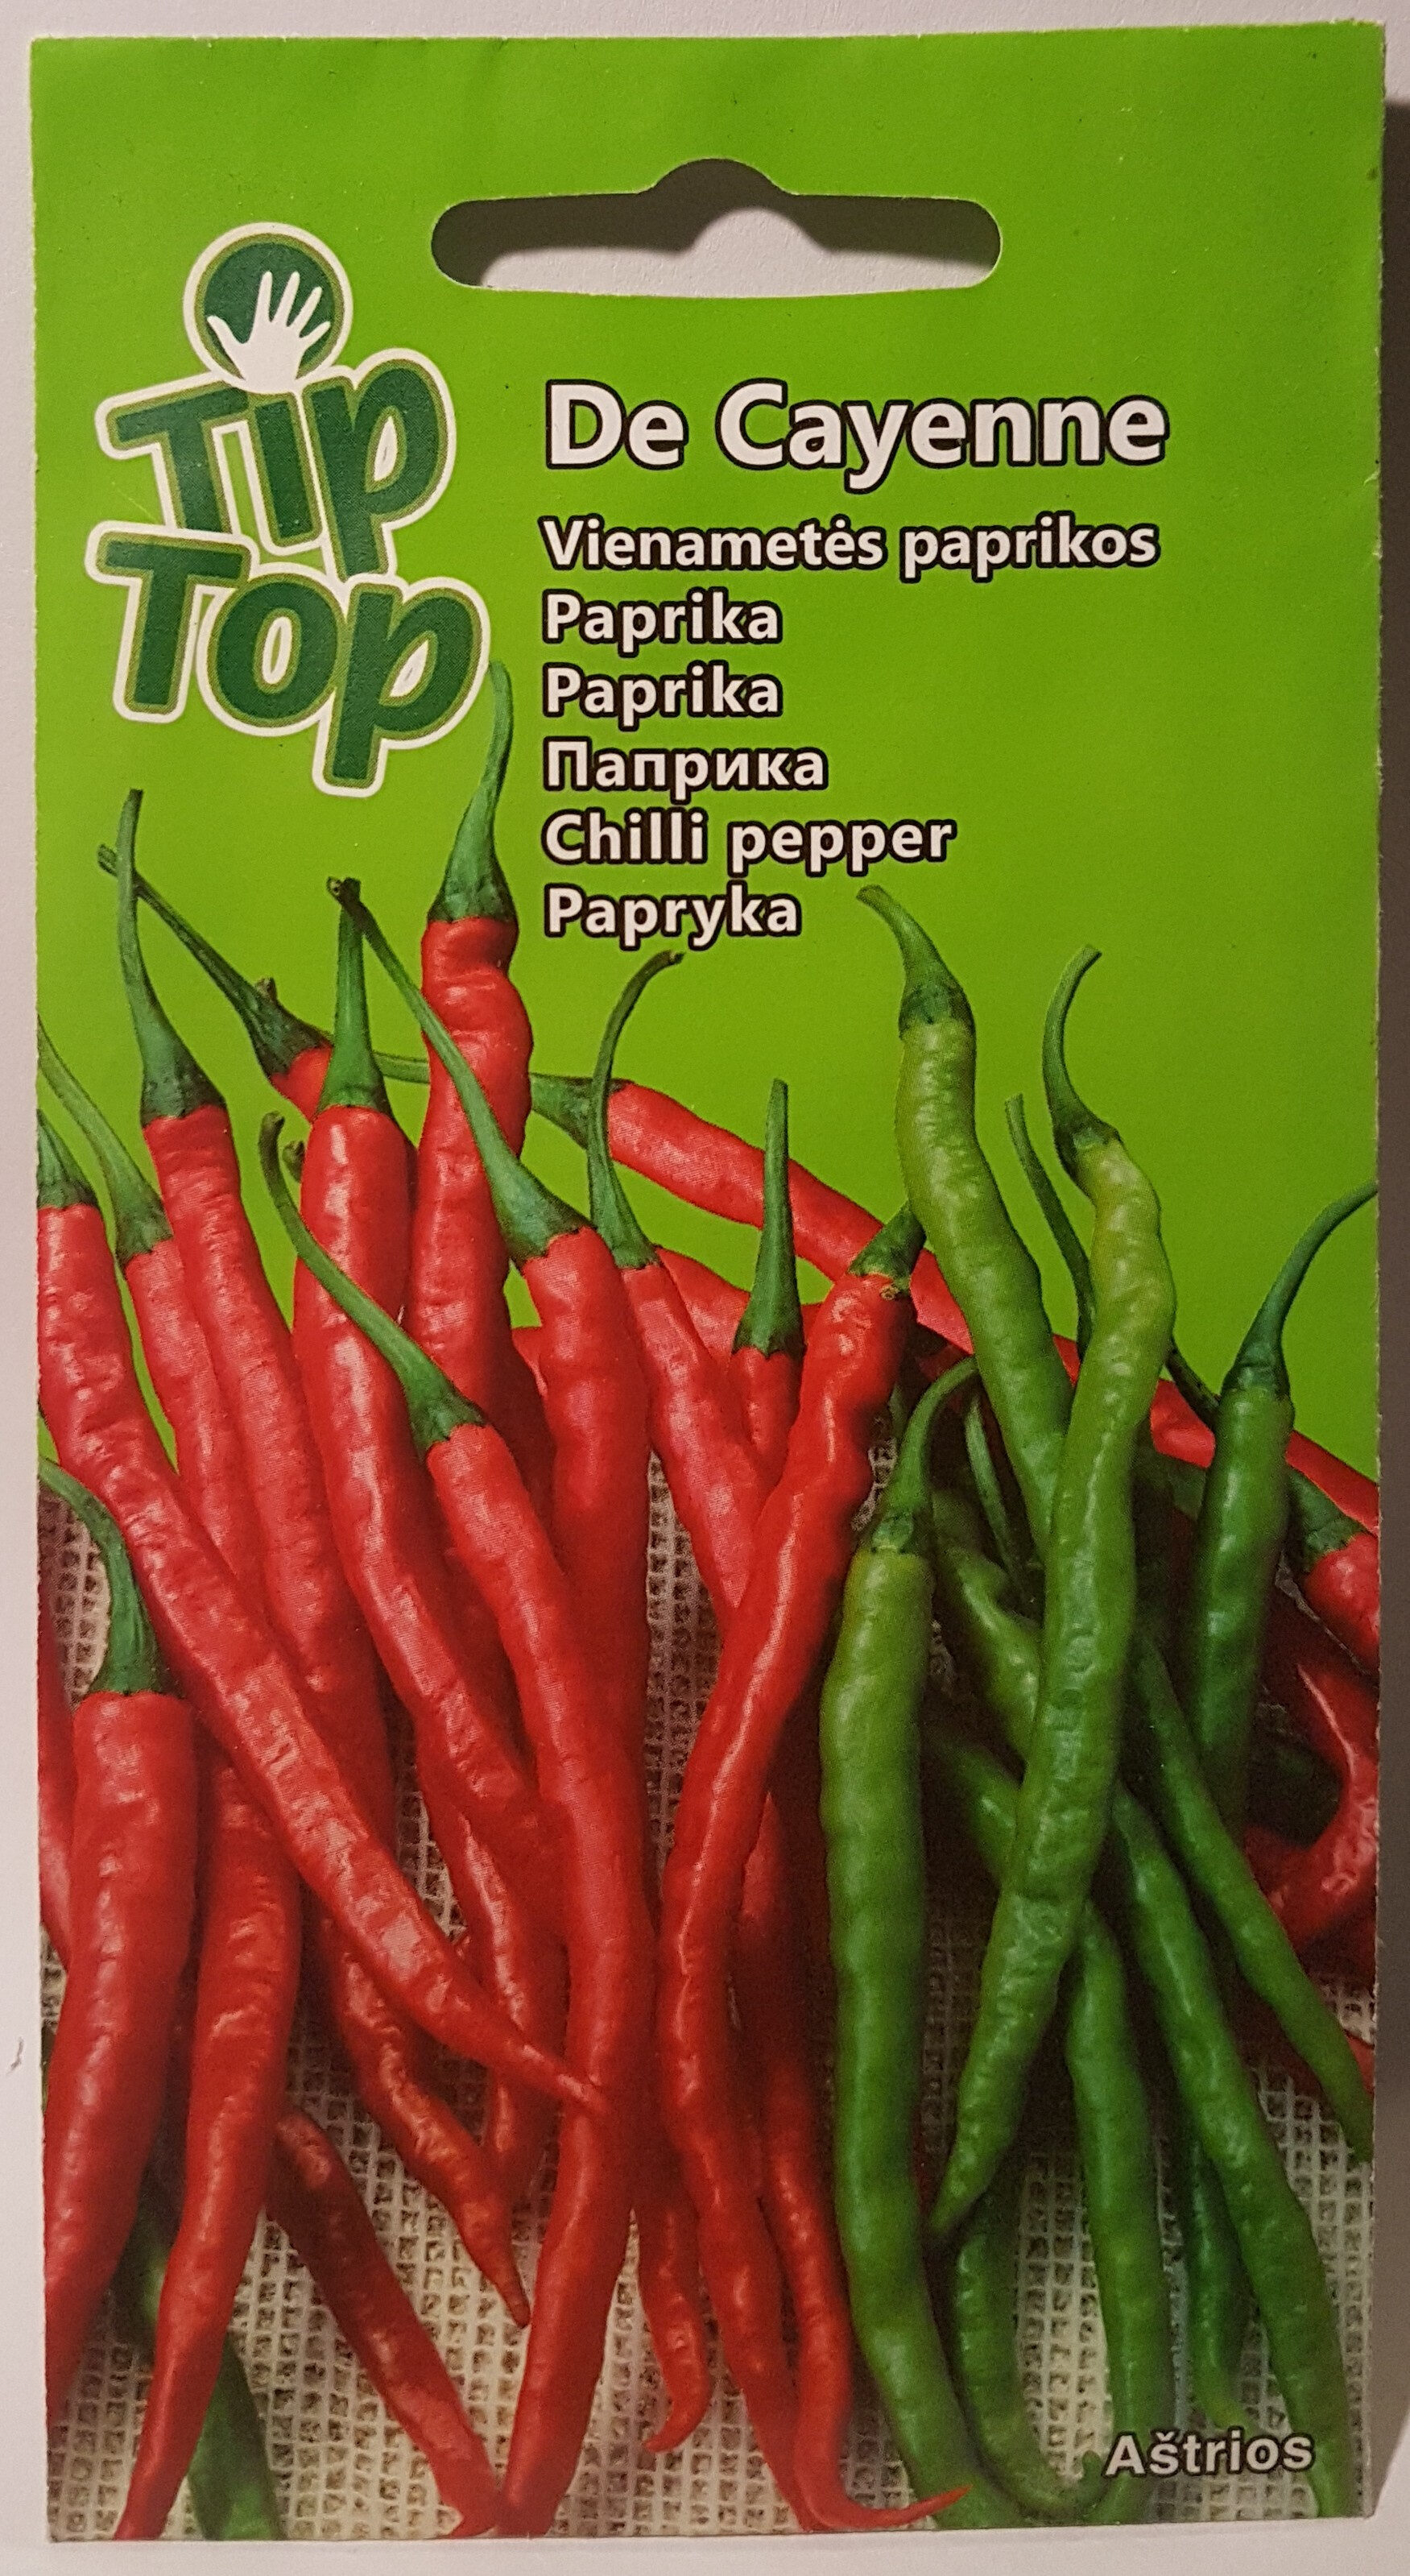 De Cayenne Chilli pepper - Product - en